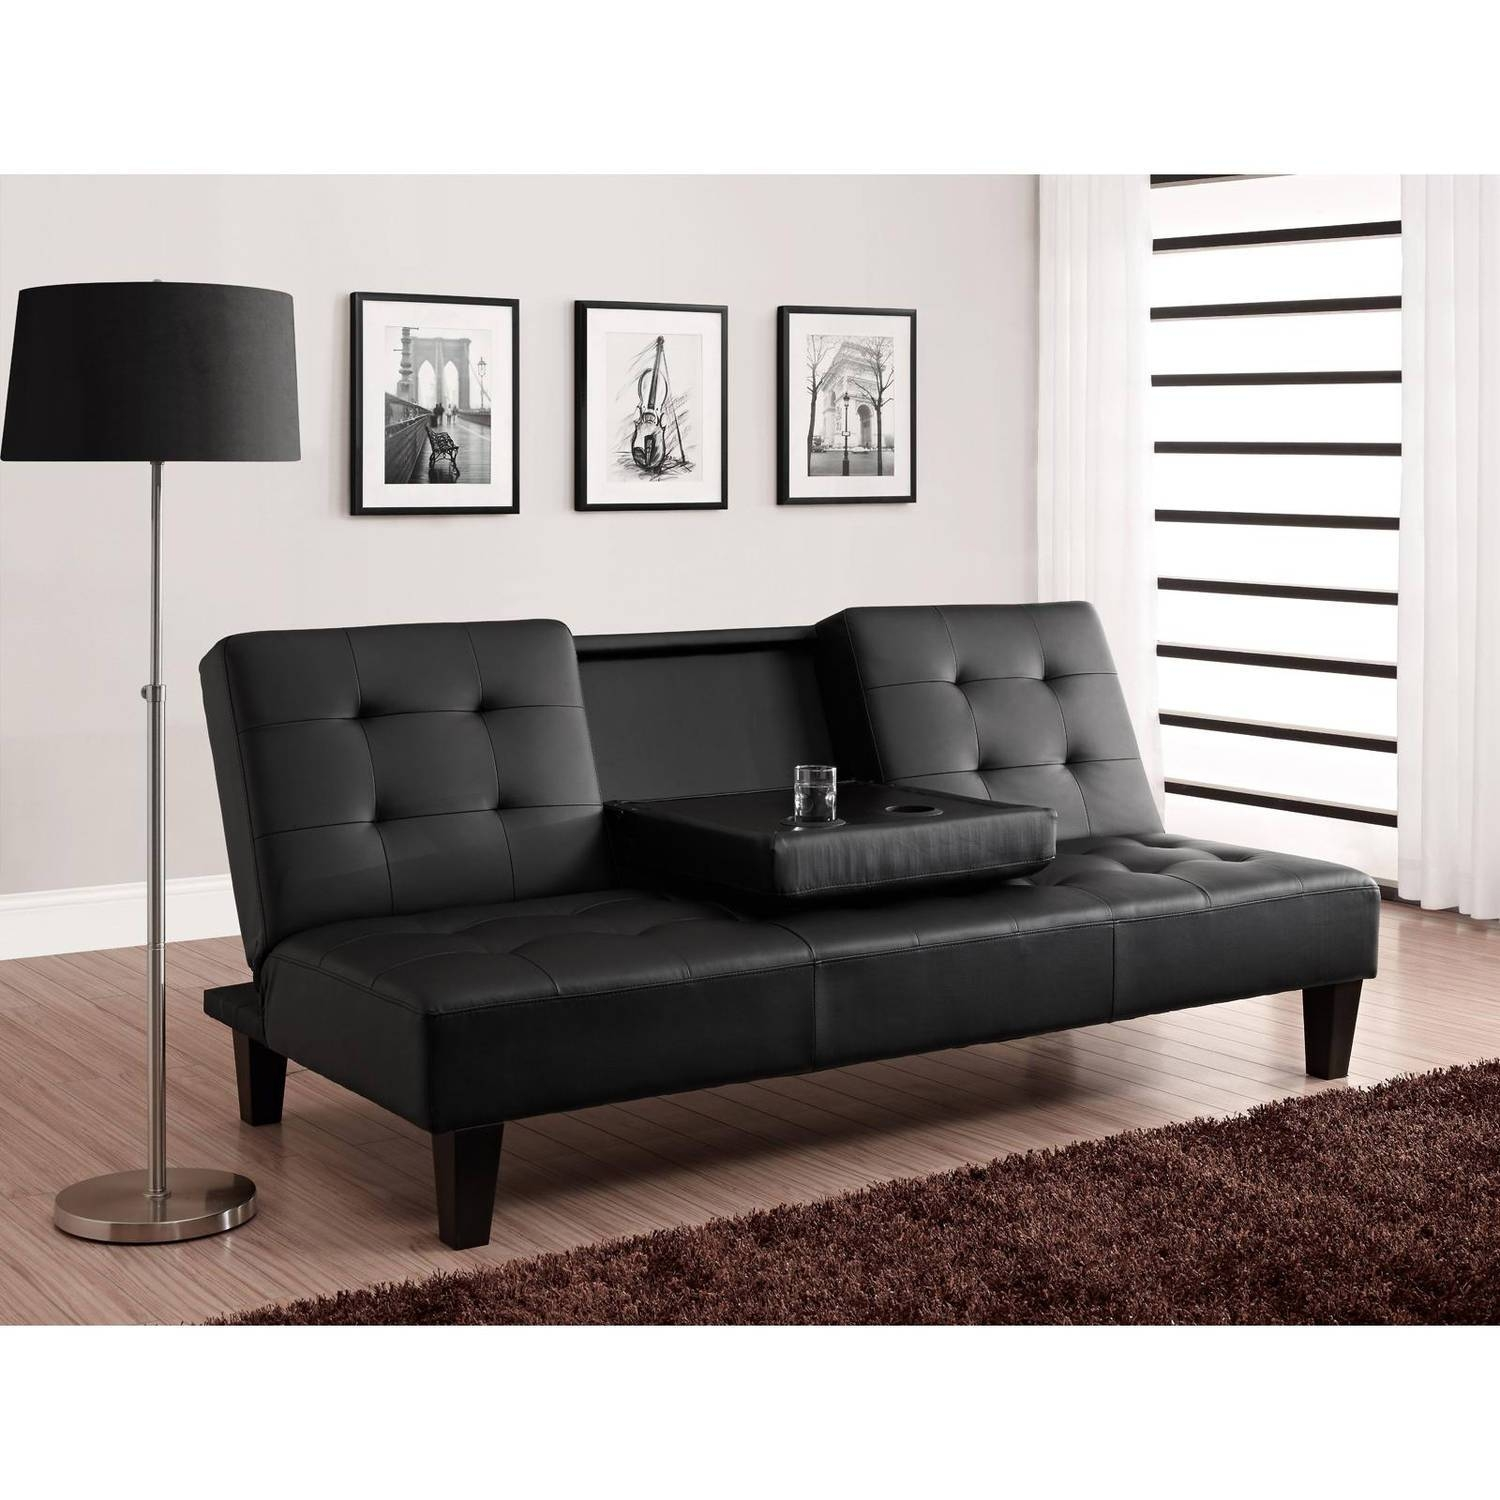 Black Futon Covers Target : Roof, Fence & Futons - Good Futon regarding Target Couch Beds (Image 1 of 15)